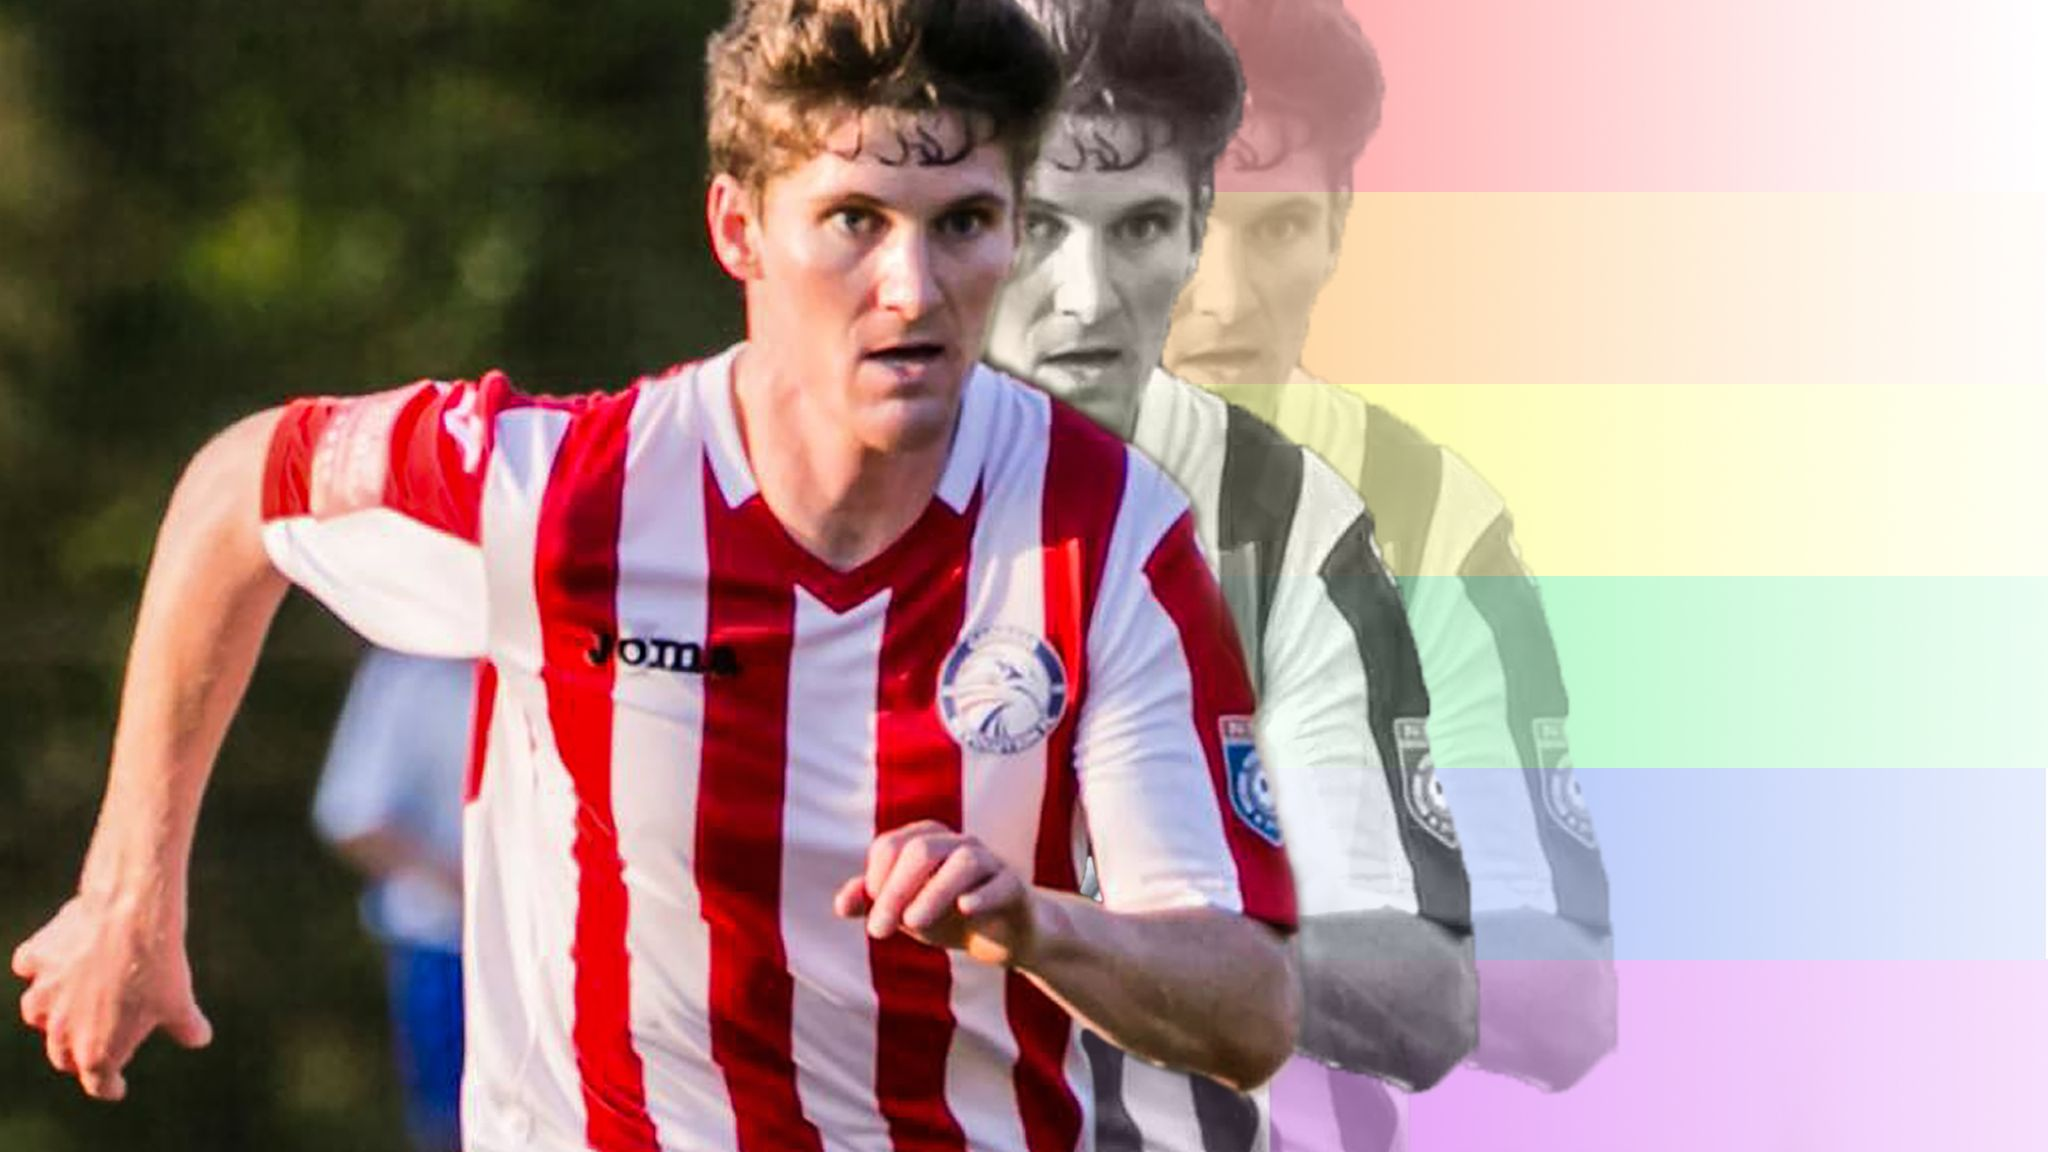 A gay footballer's story: Adam McCabe on homophobia, mental